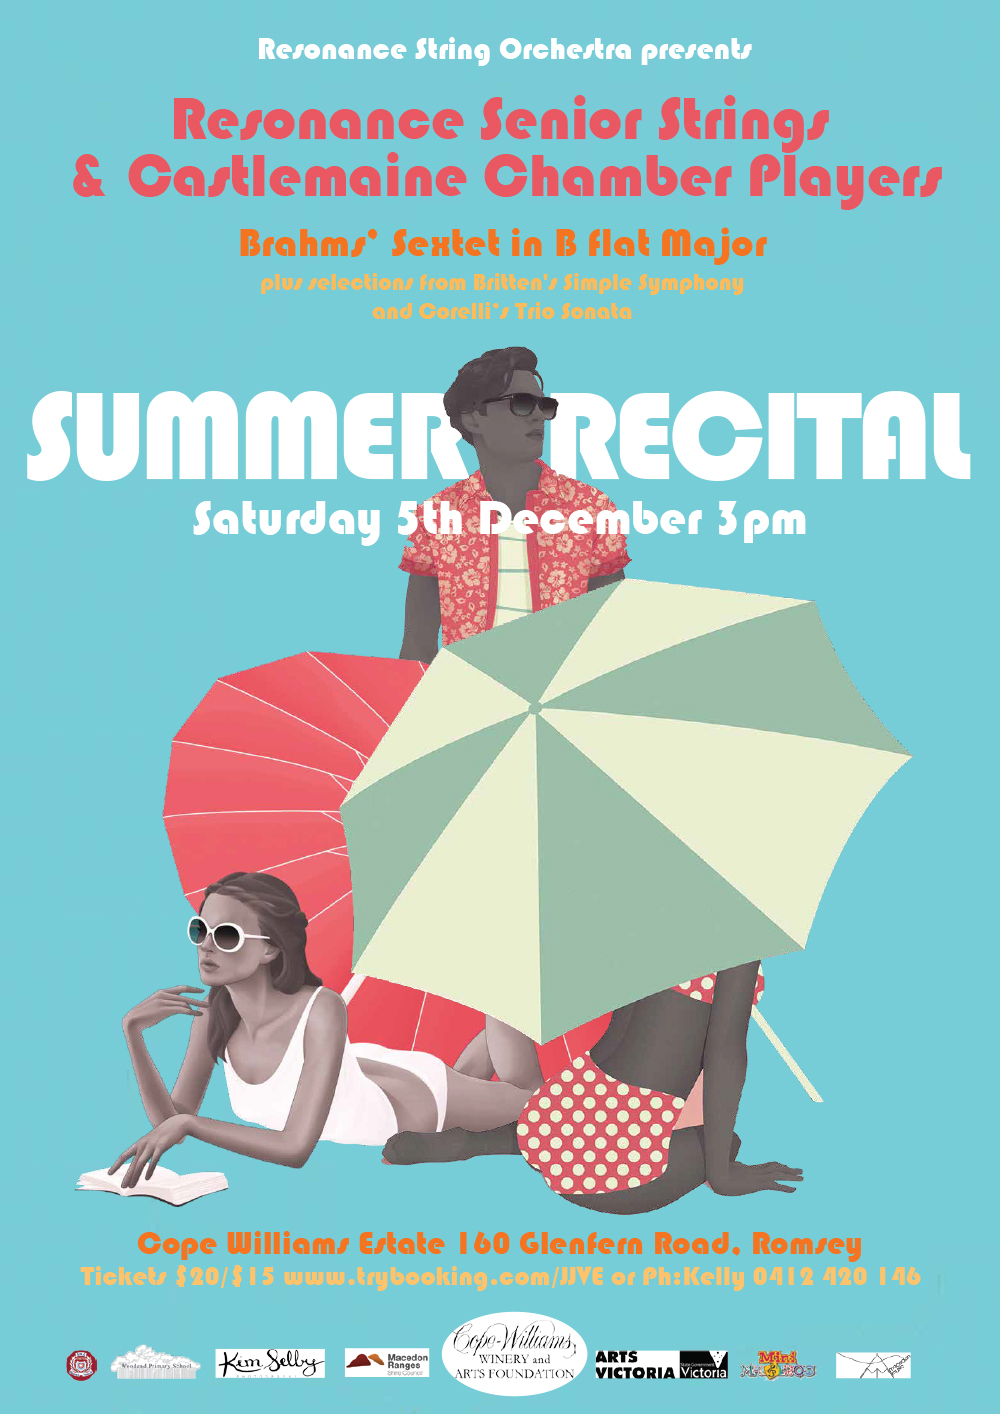 Summer Recital Poster 2015.jpg